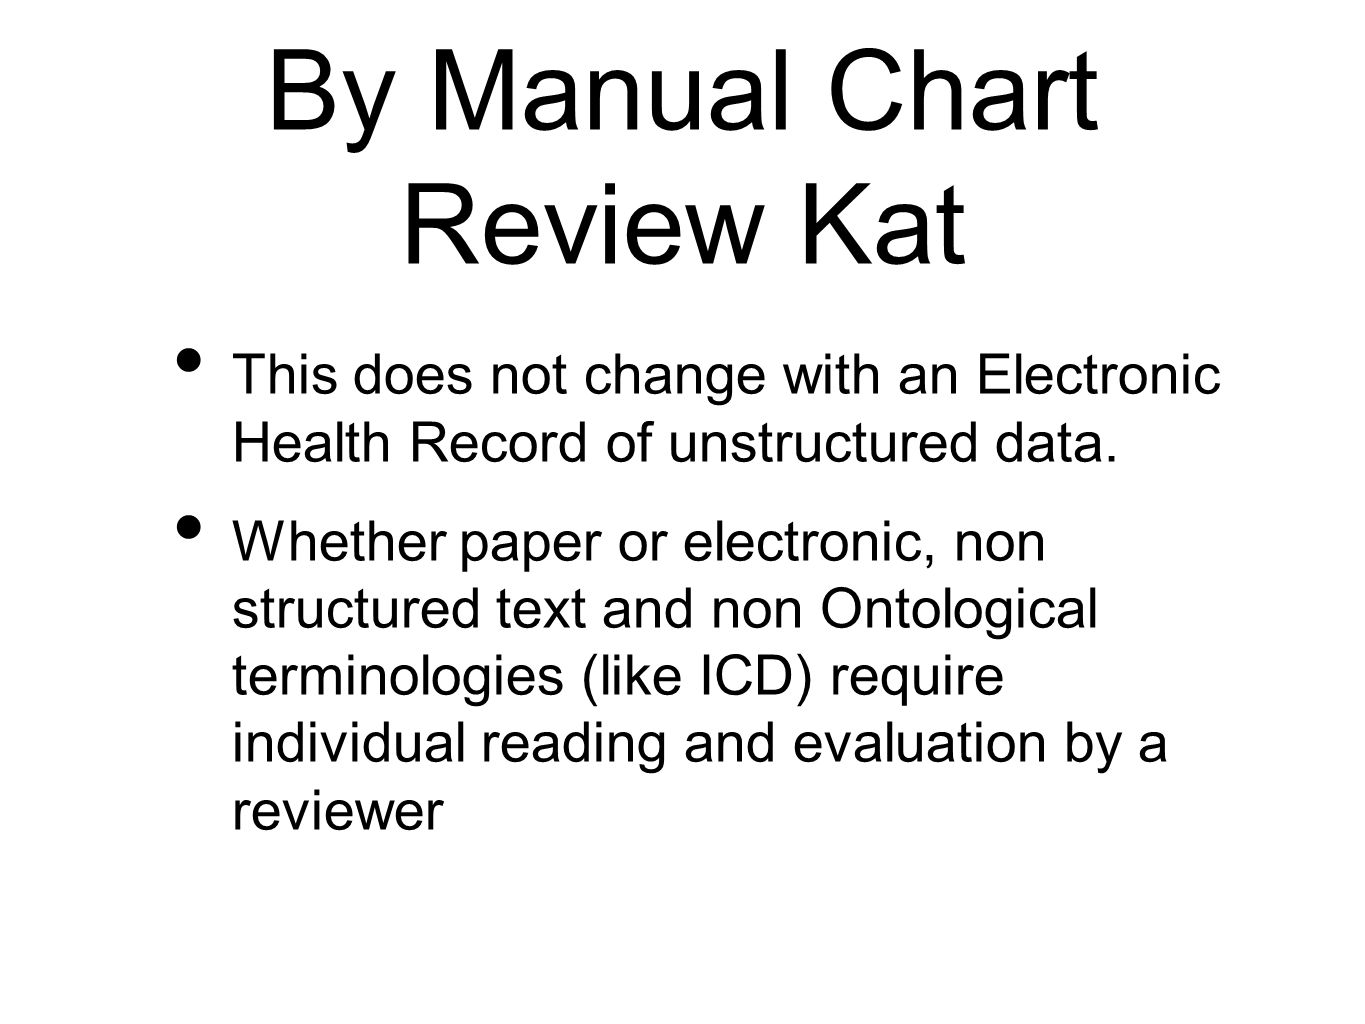 By Manual Chart Review Kat This does not change with an Electronic Health Record of unstructured data. Whether paper or electronic, non structured tex